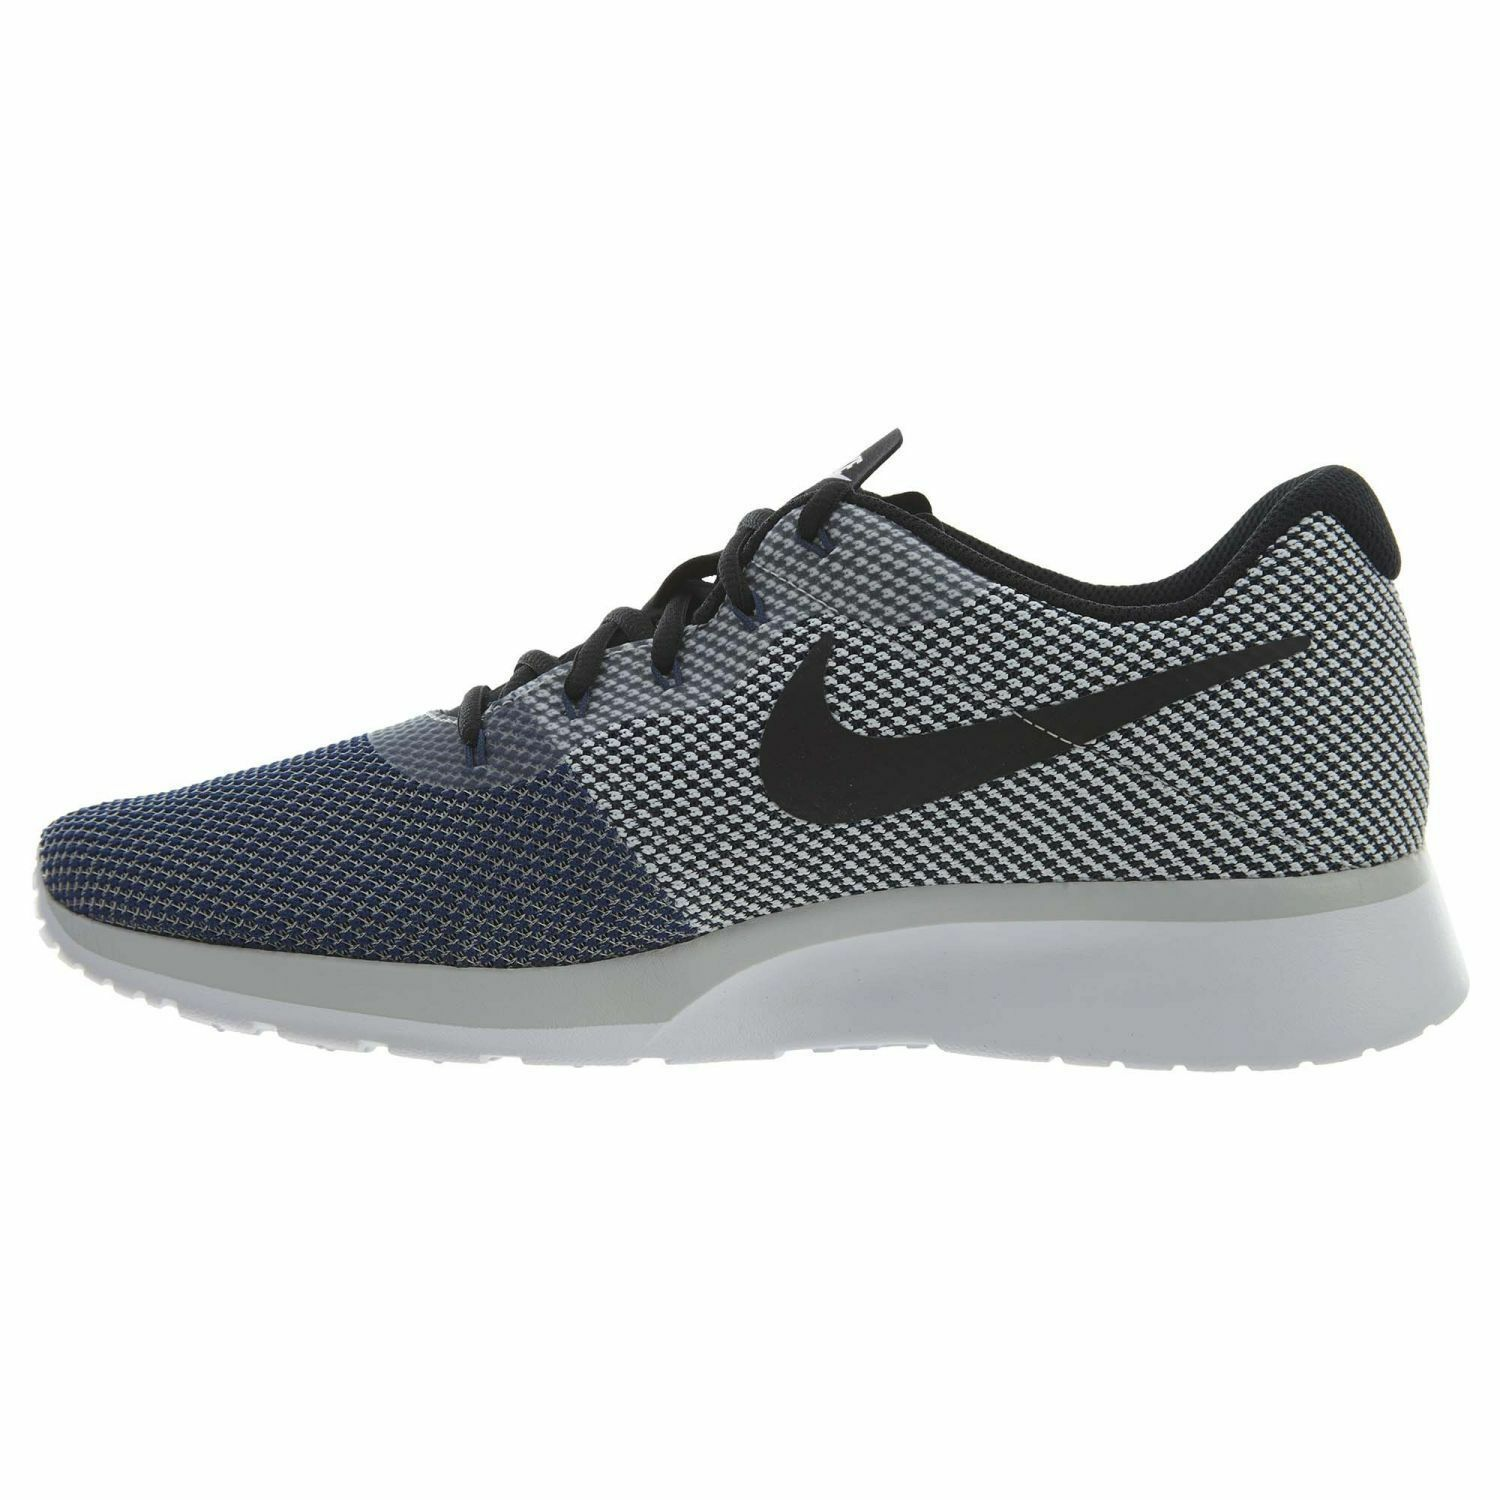 Nike Tanjun Racer Girl 921669-005 Vast Grey Knit Mesh Running shoes Size 8